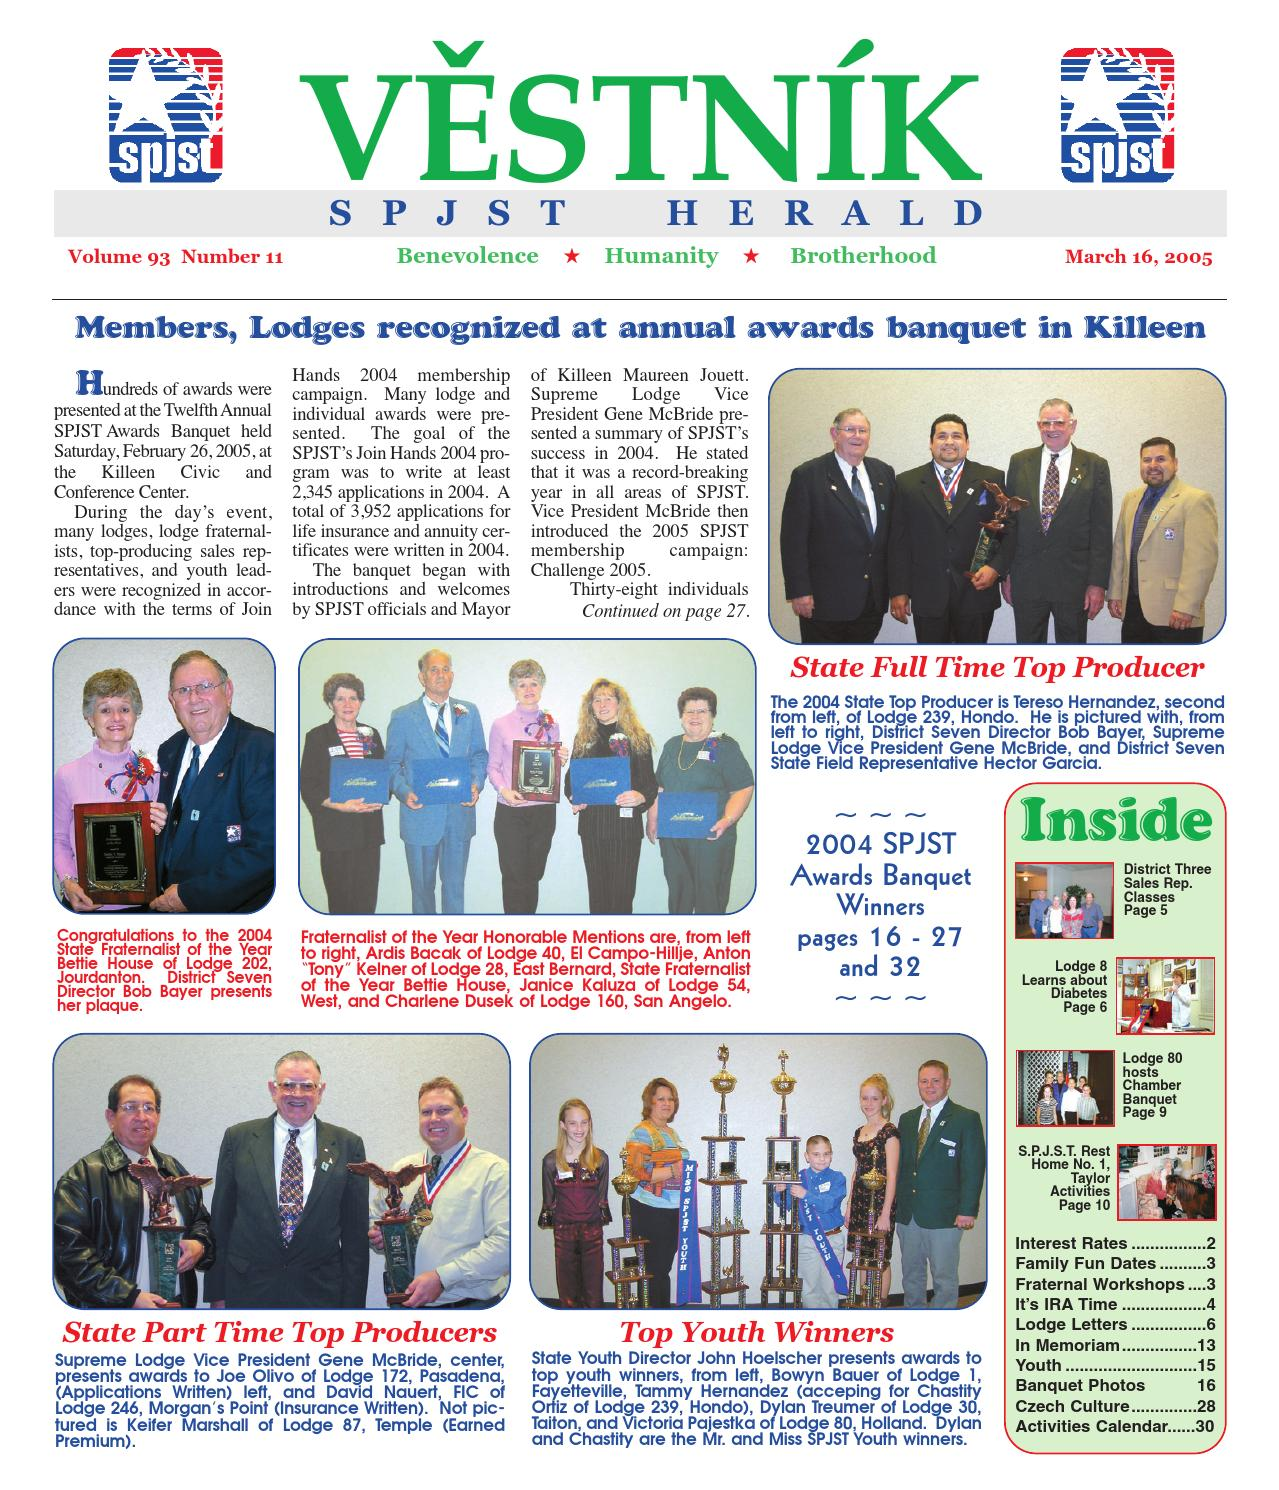 Vestnik 2005 03 16 By Spjst Issuu